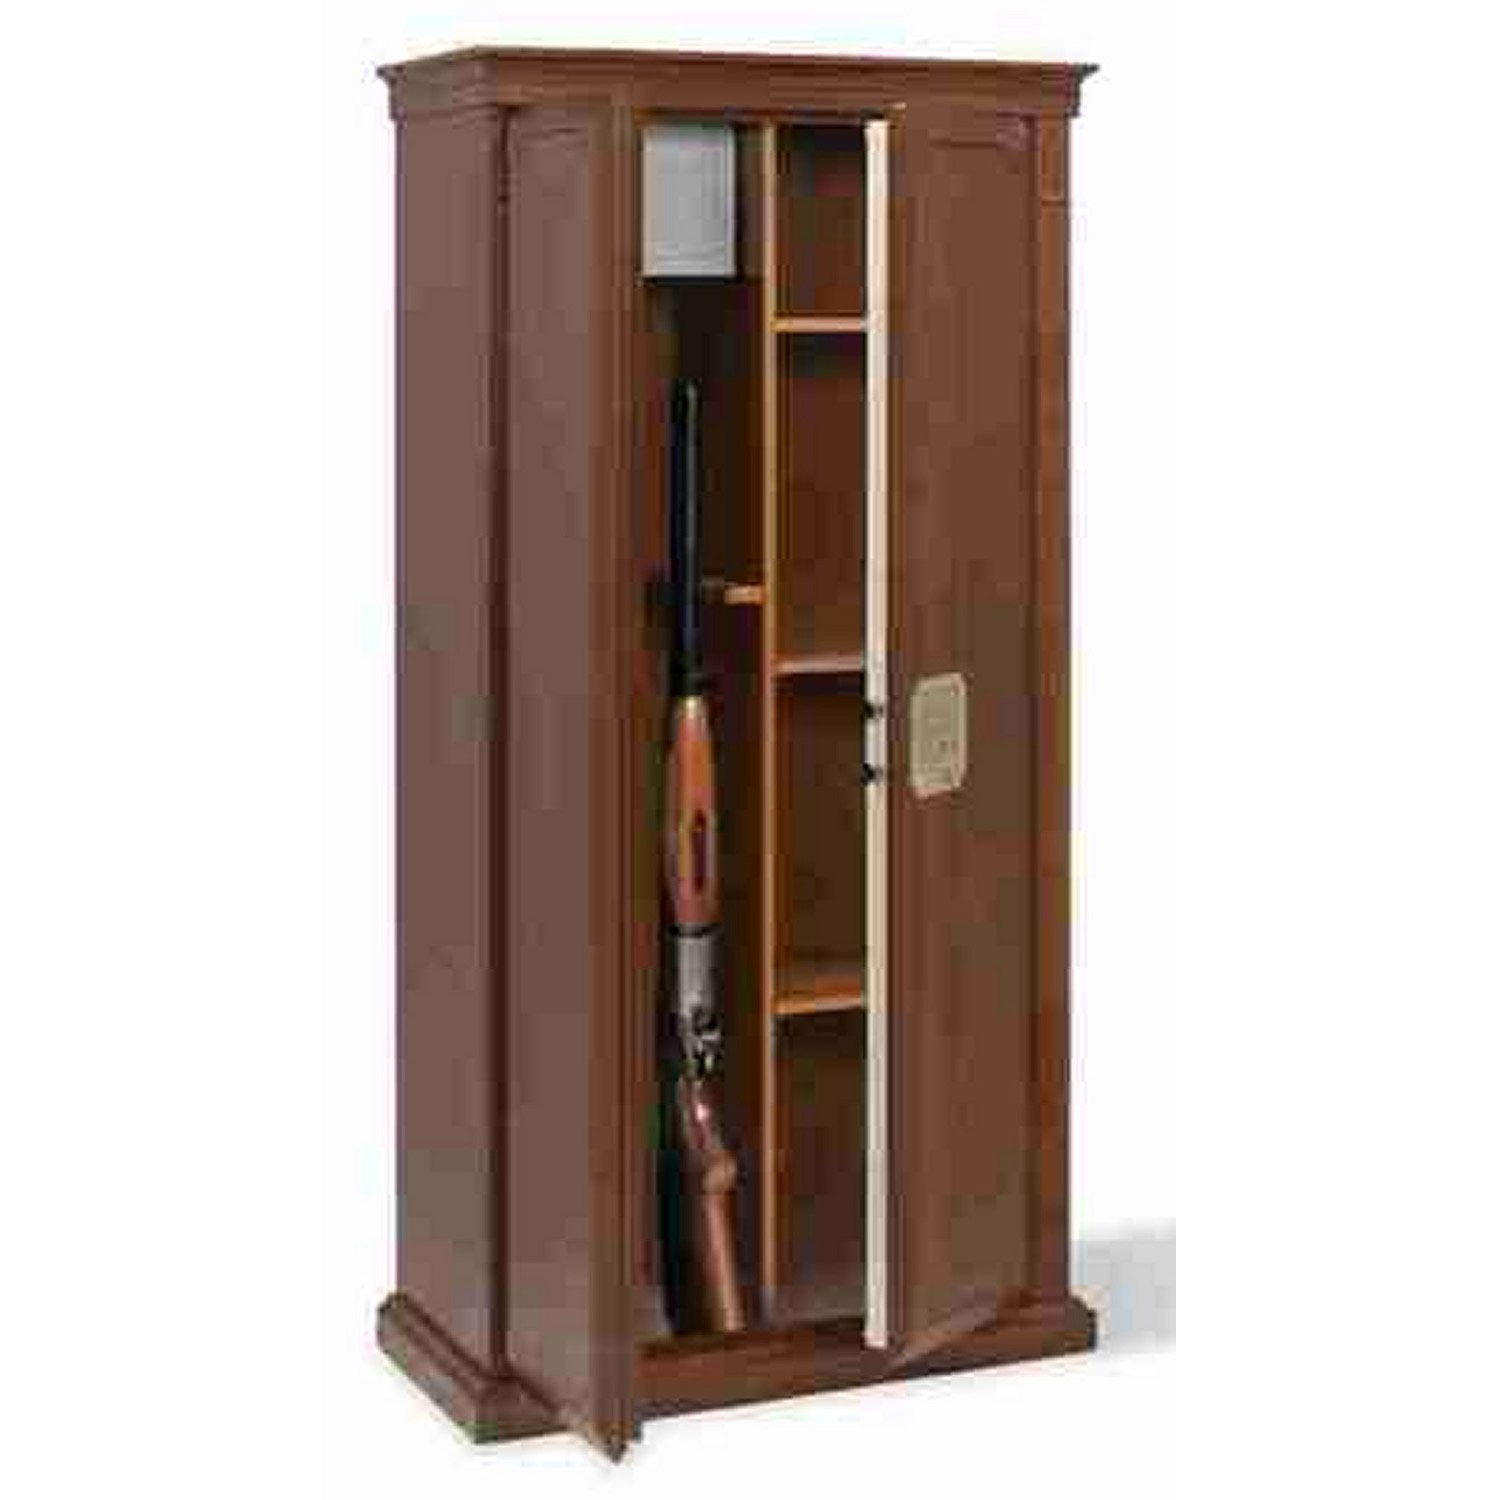 armoire a pharmacie leroy merlin maison design. Black Bedroom Furniture Sets. Home Design Ideas